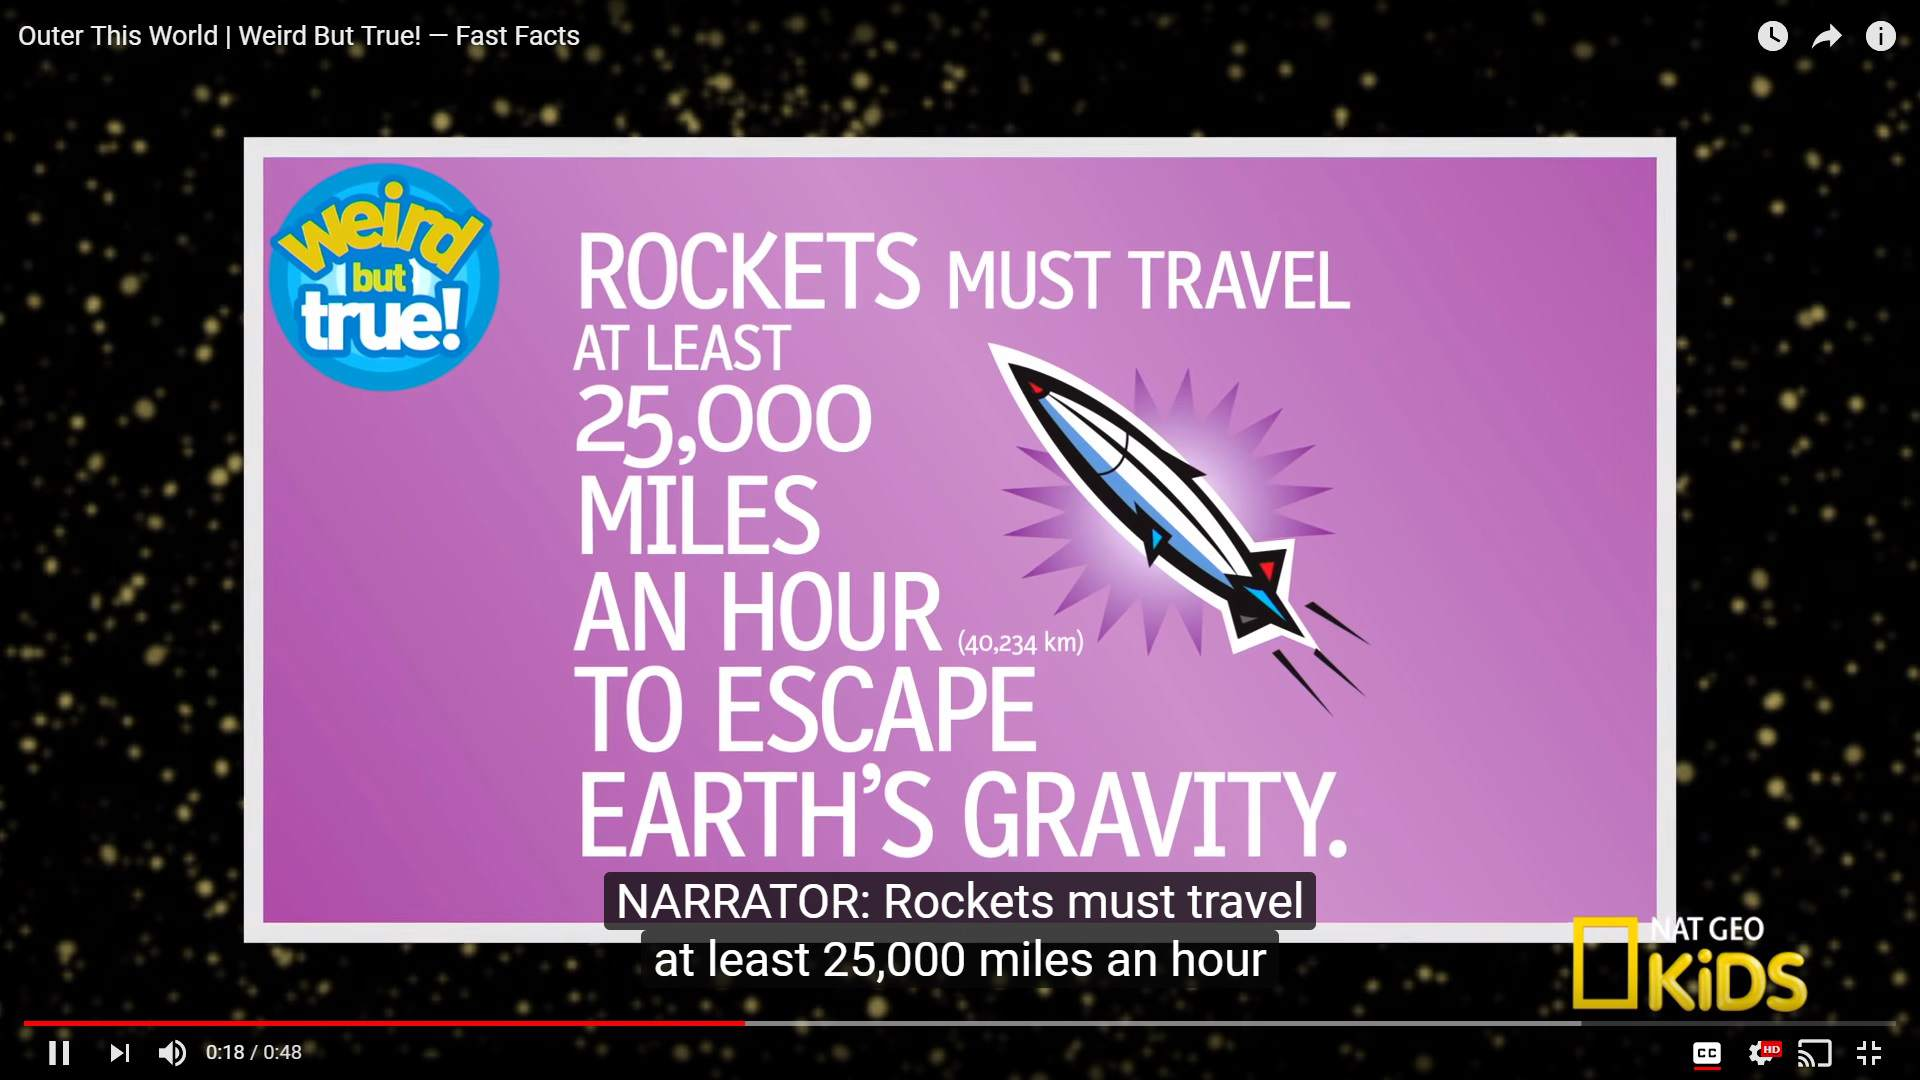 NatGeo Kids' video screenshot with an illustration of a rocket and rocket facts